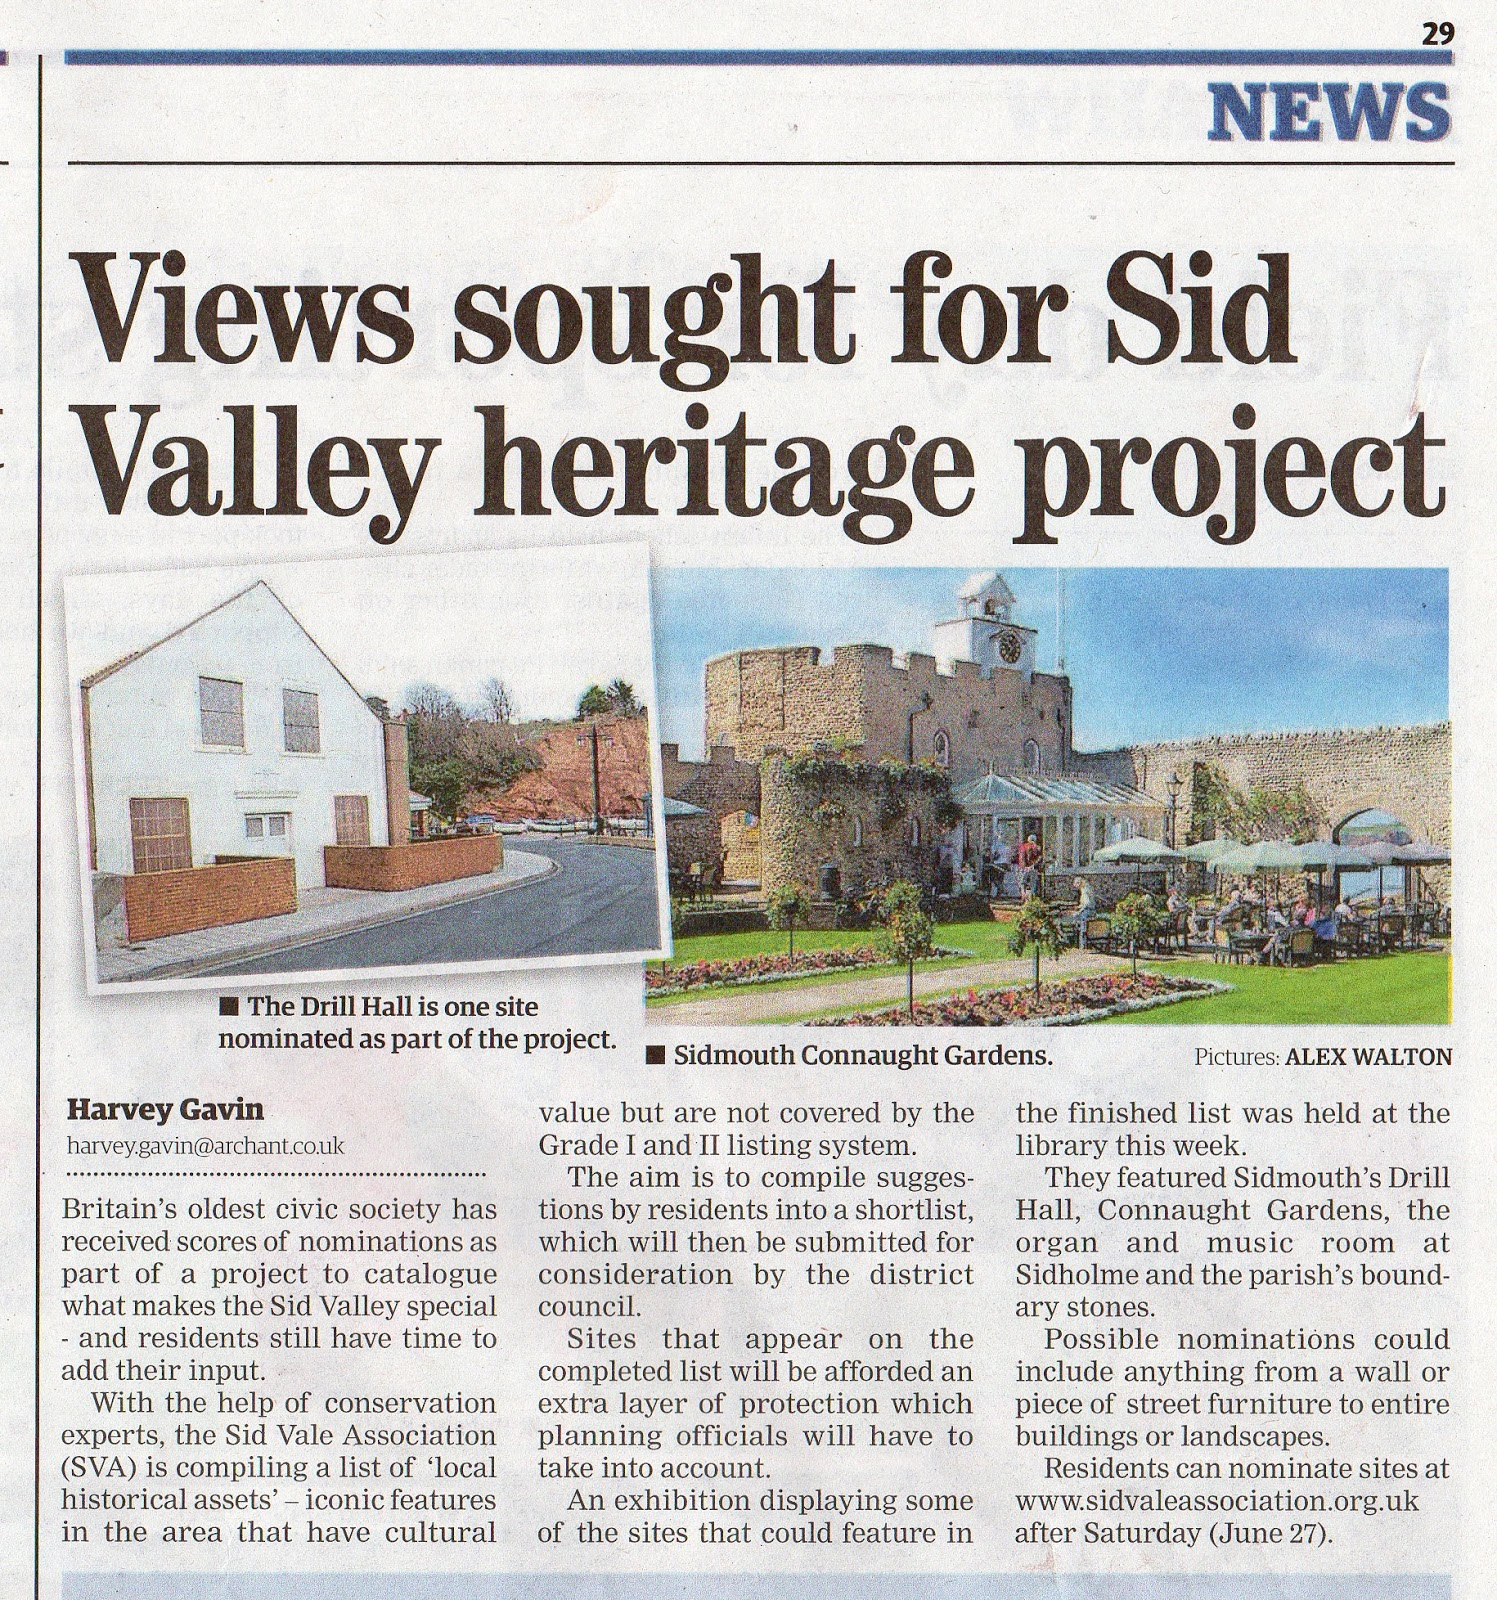 public heritage assets Is concerned about potential waste of public funds valuing certain types of heritage assets for example, it will be costly to value archeological and natural heritage assets for little apparent benefit.